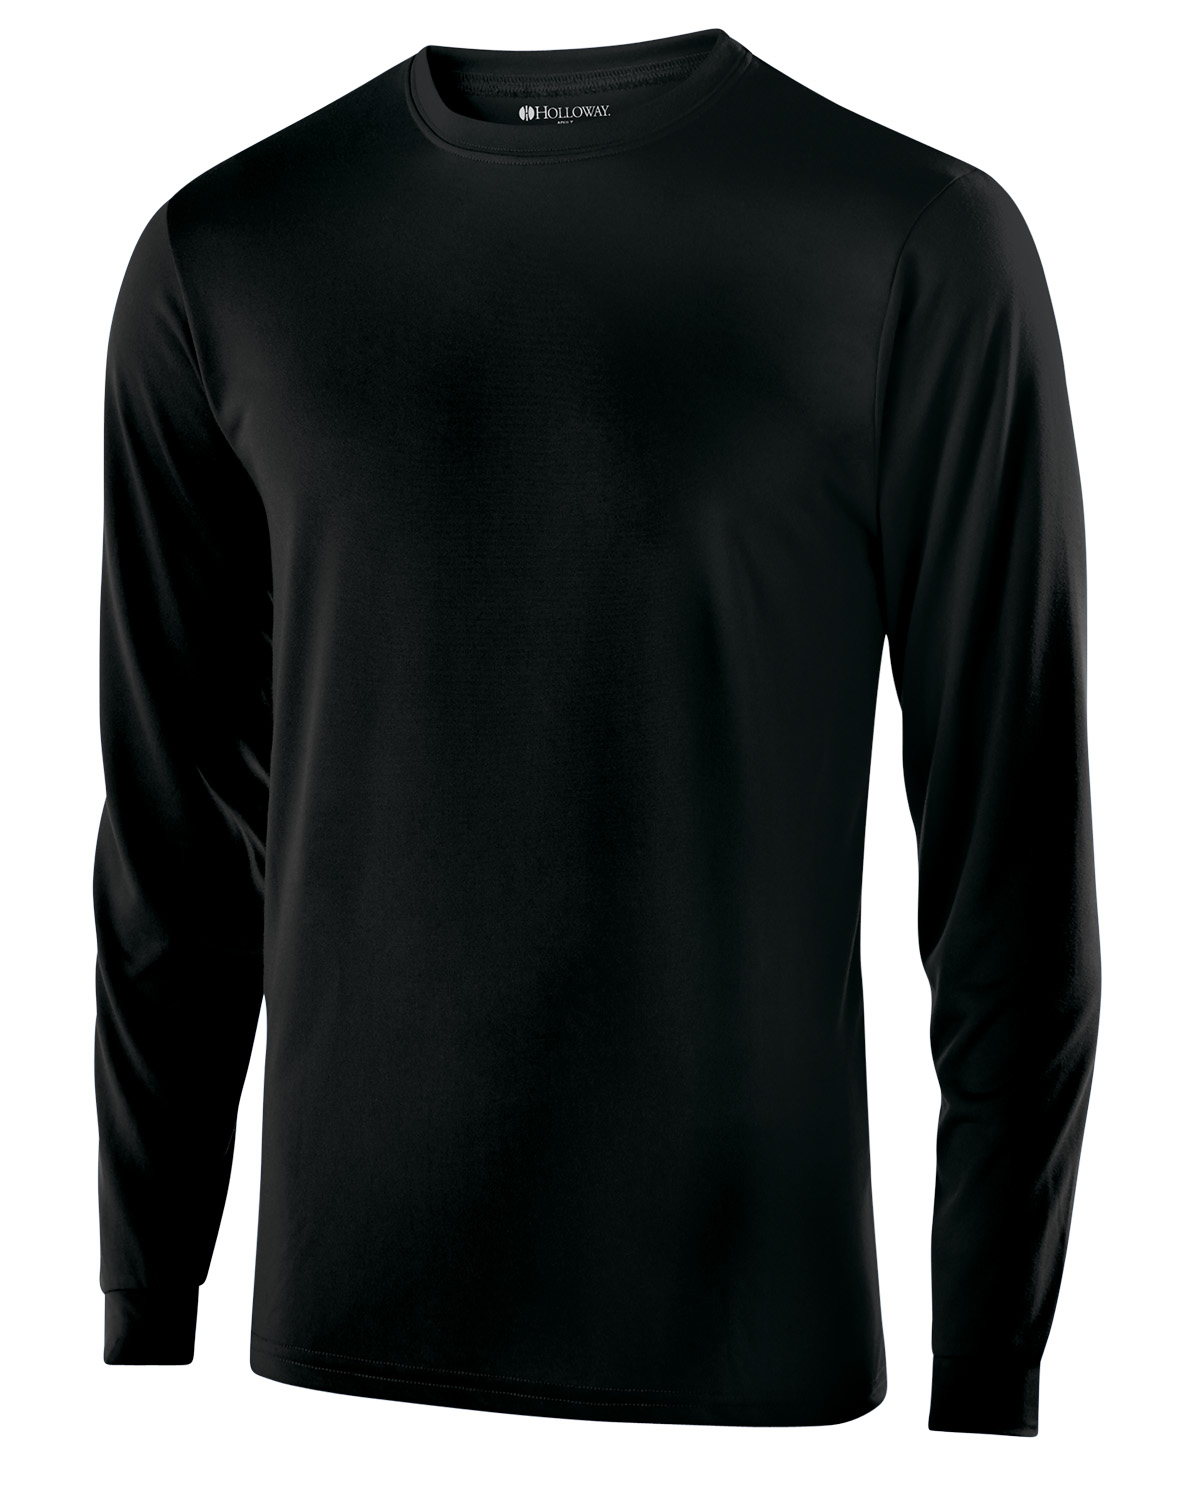 Holloway 222525 - Adult Polyester Long Sleeve Gauge Shirt